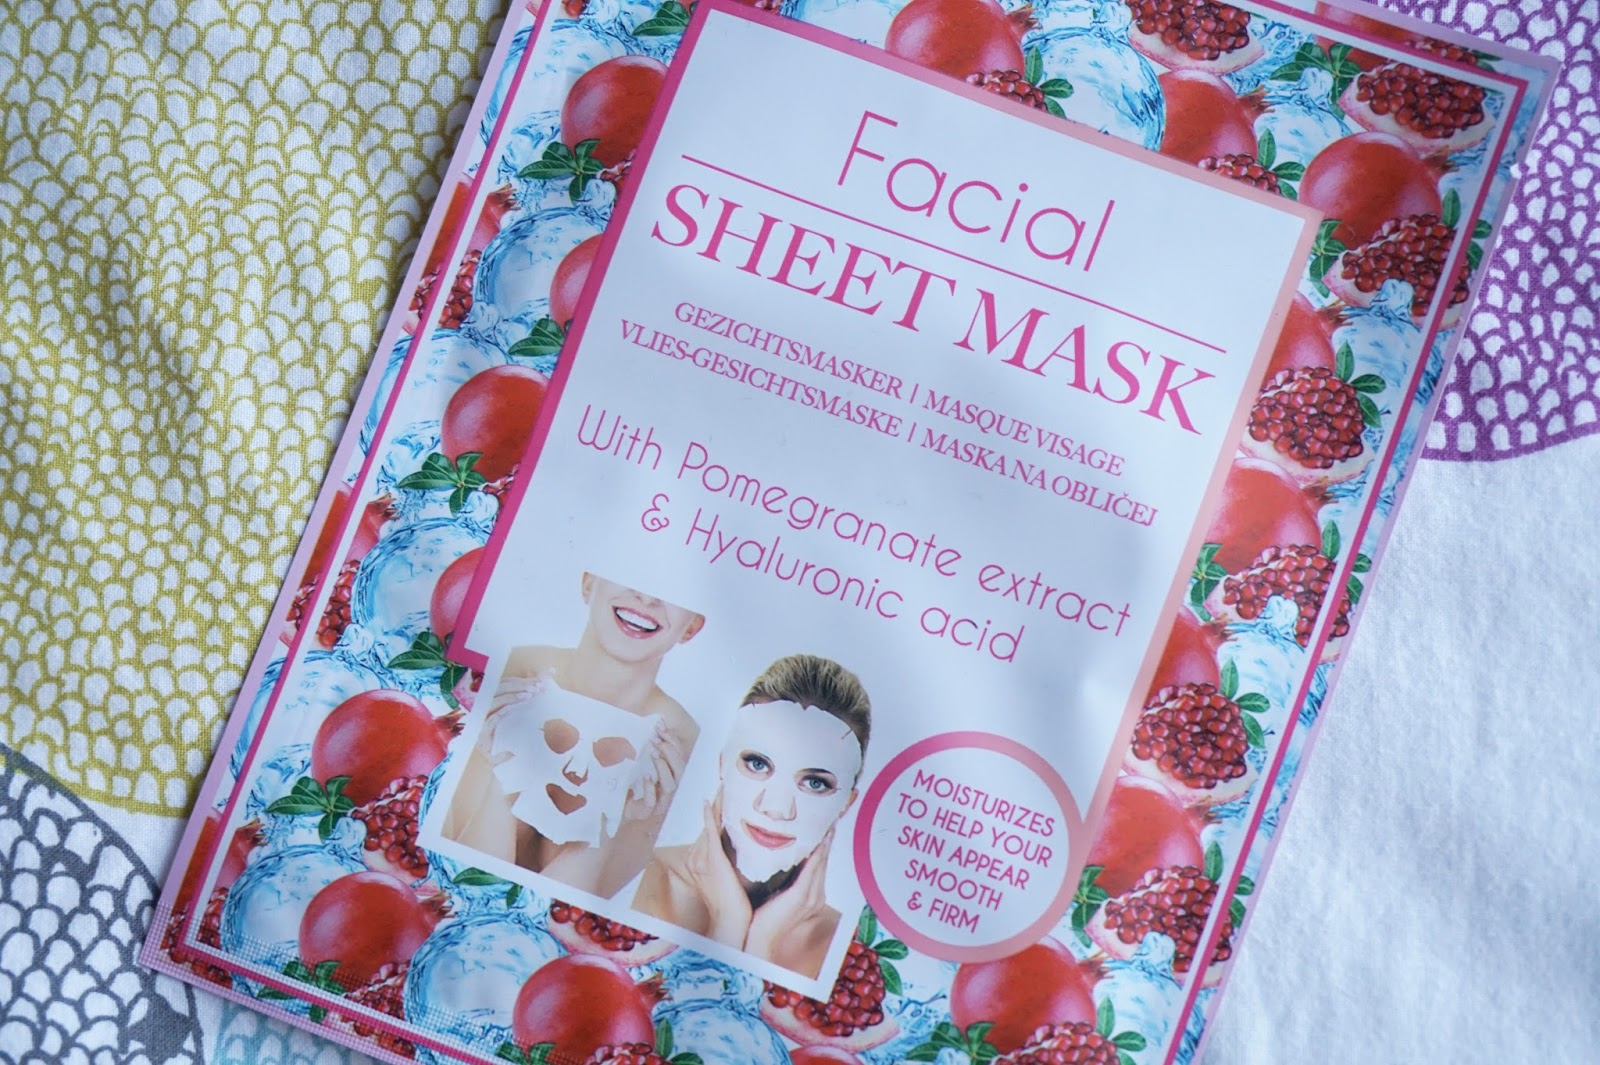 Action facial sheet mask with pomegranate extract & hyaluronic acid